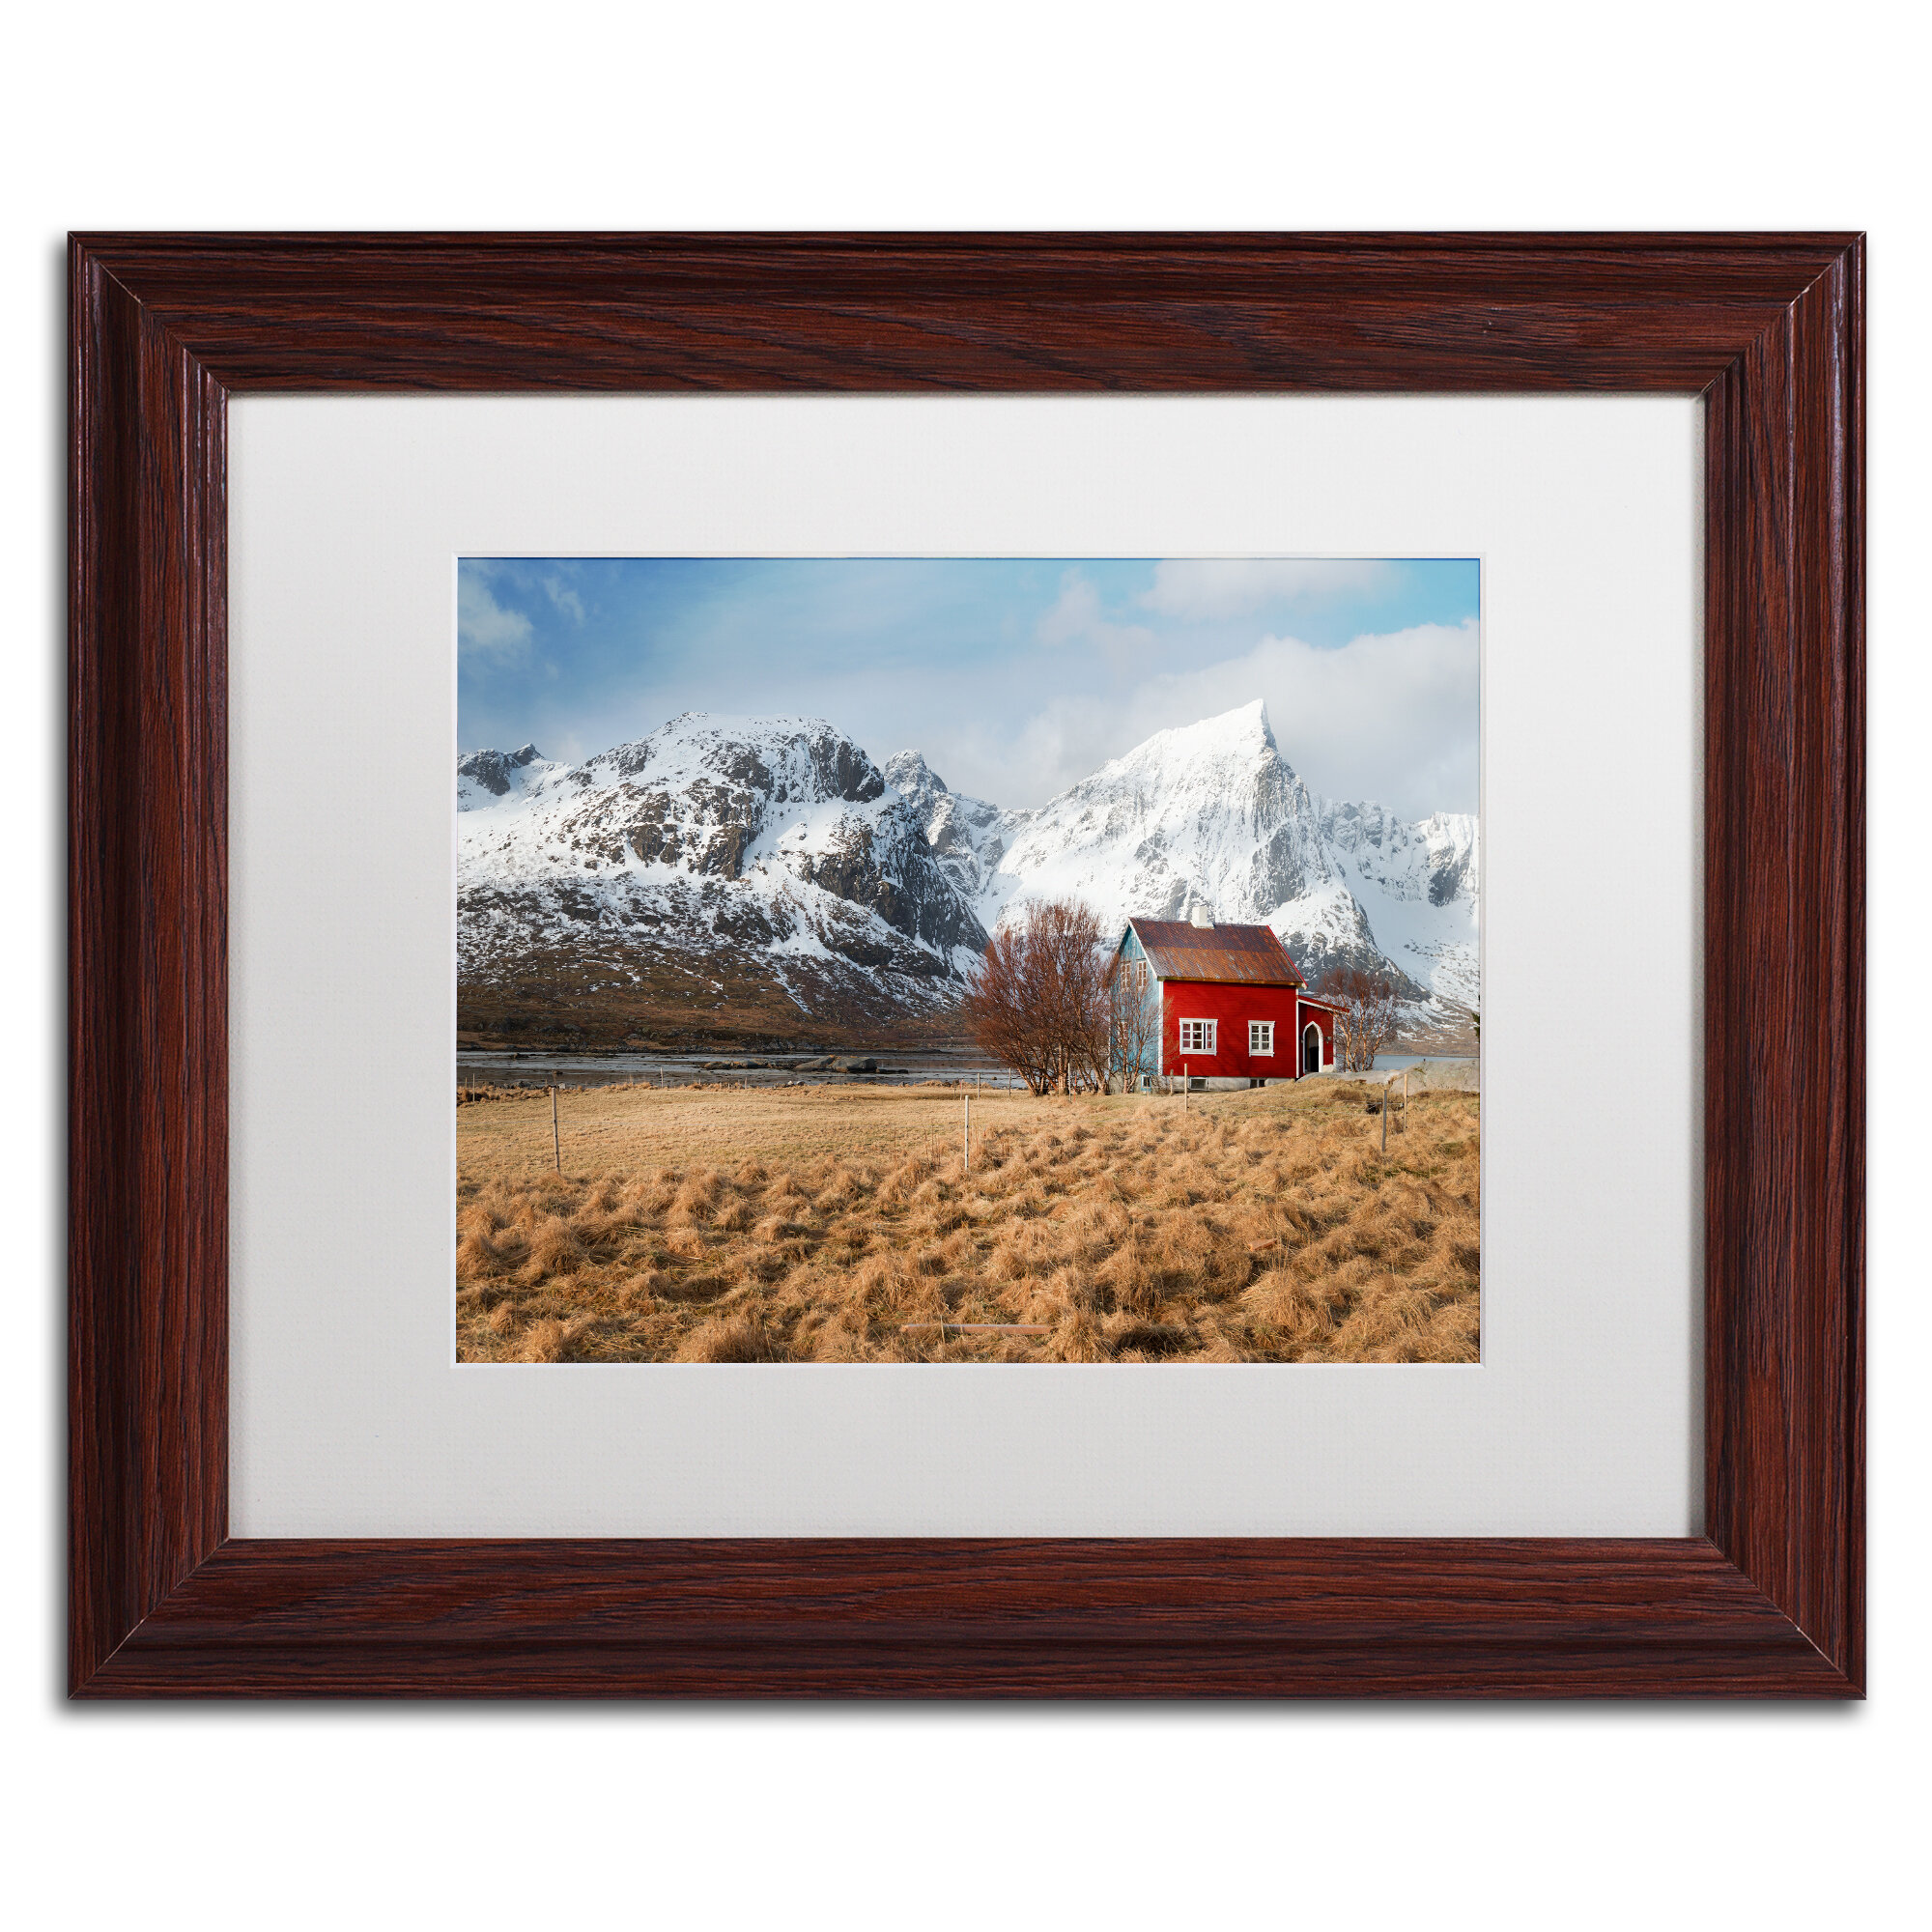 Trademark Art Believe It When You See It By Framed Photographic Print On Canvas Wayfair